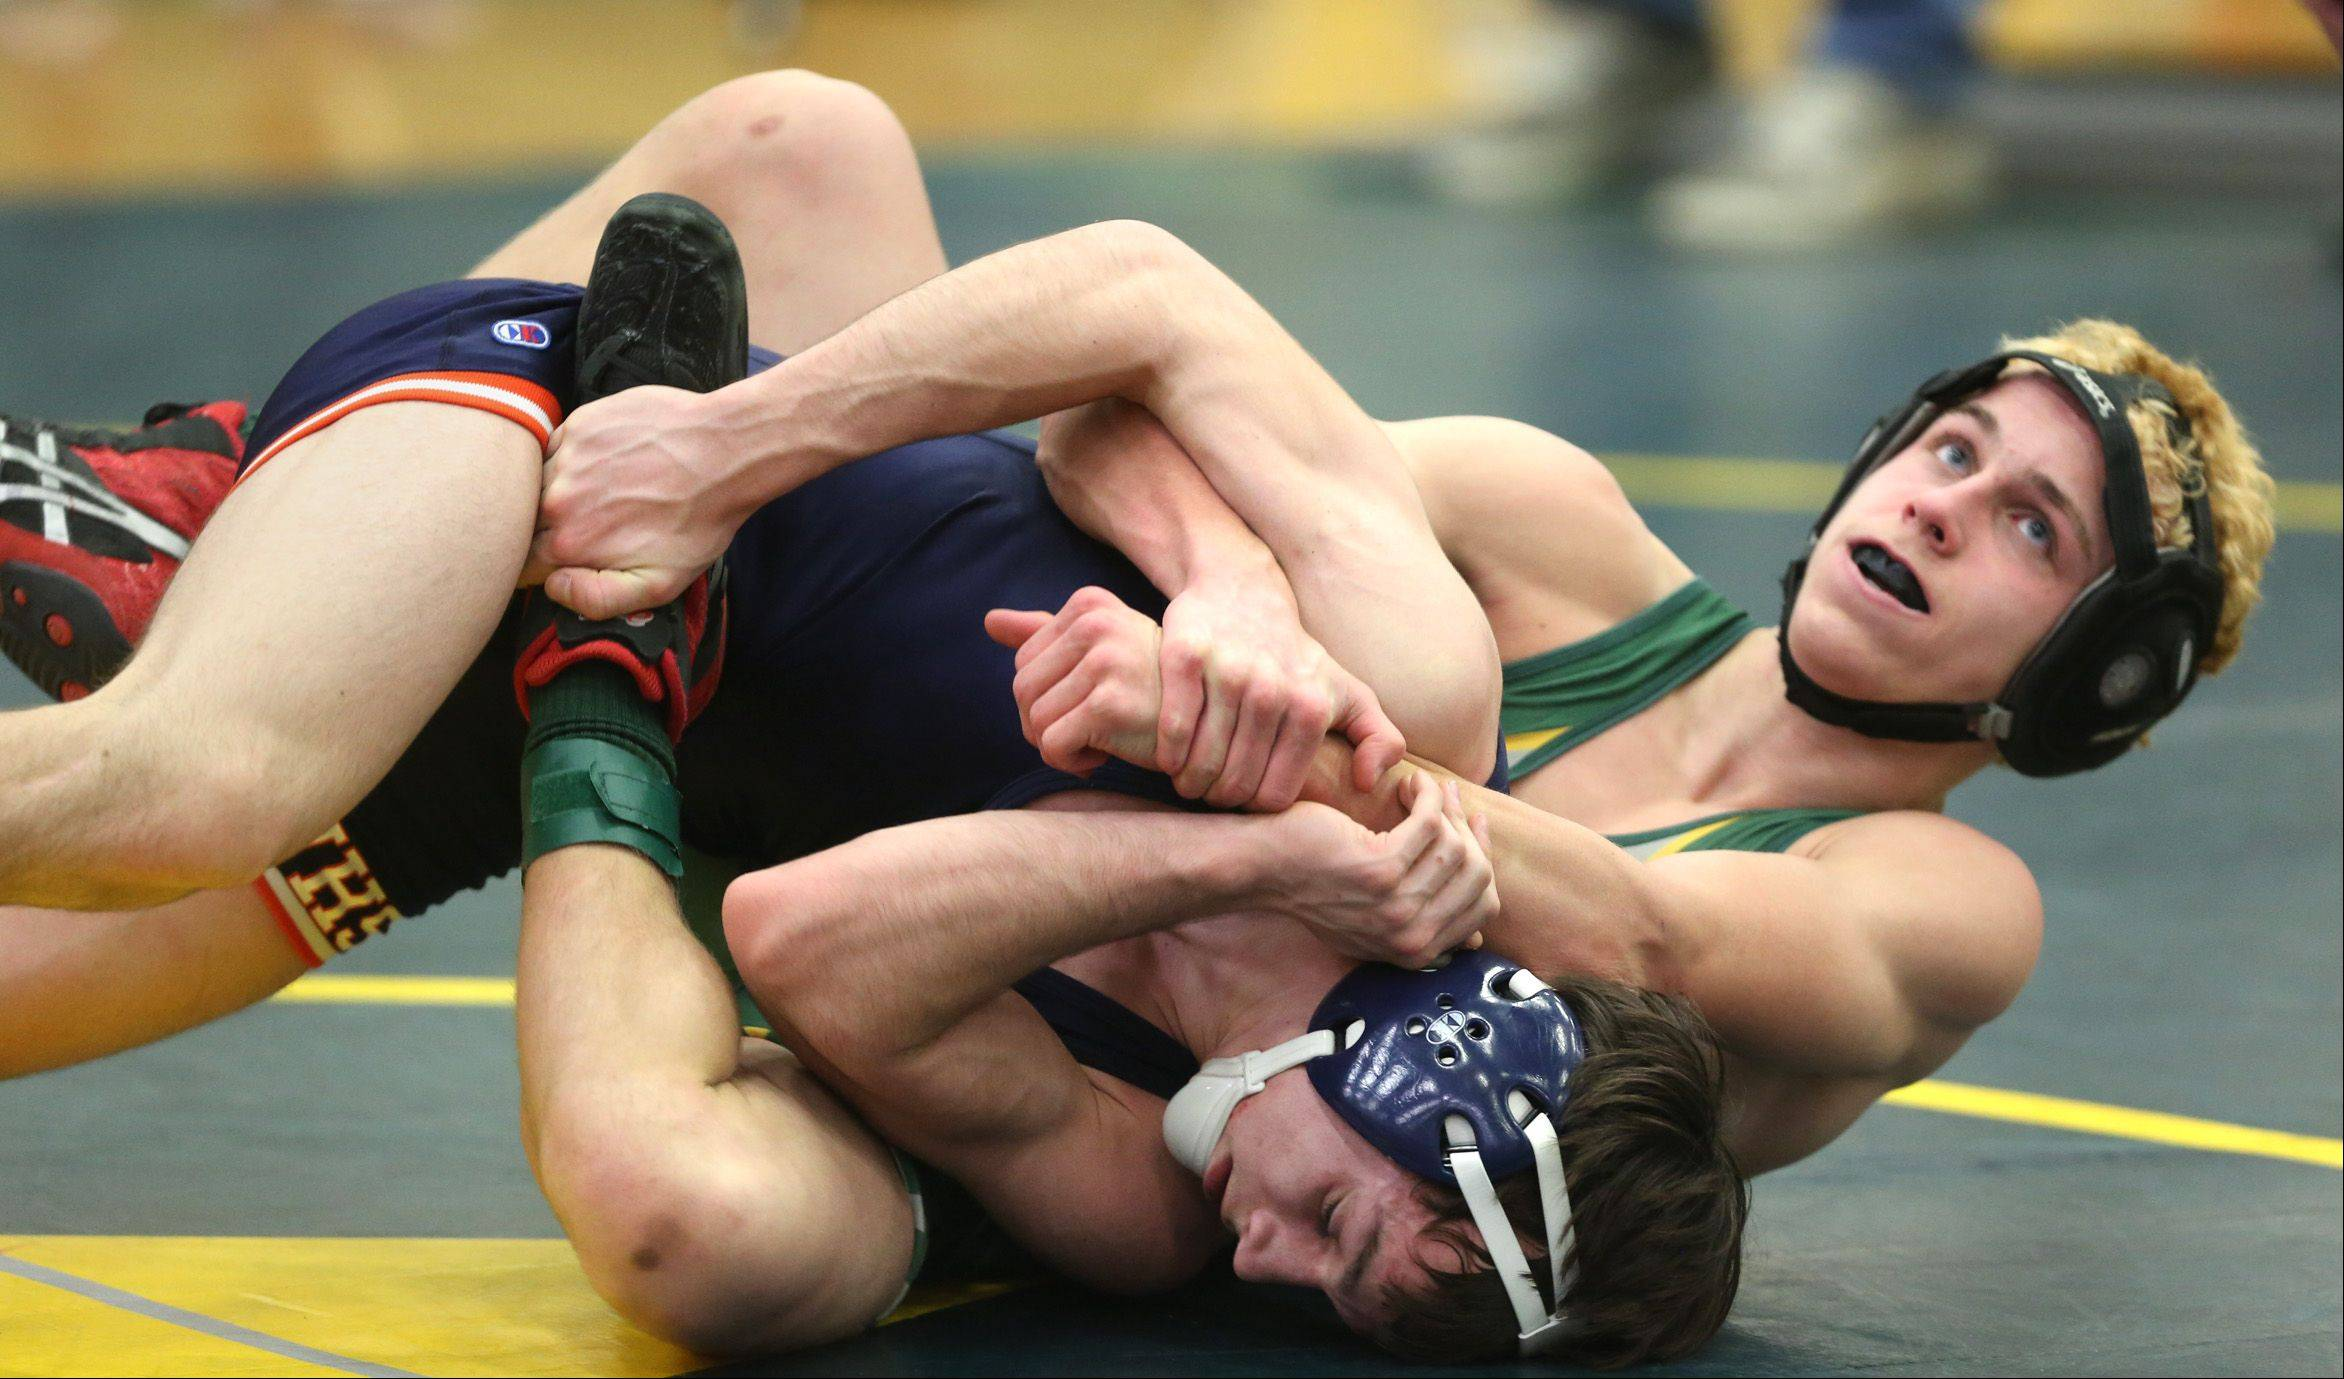 Naperville North's Aaron Kruk, left, is in the grasp of Waubonsie Valley's Michael Scalgione during regional wrestling at Waubonsie Valley High School.